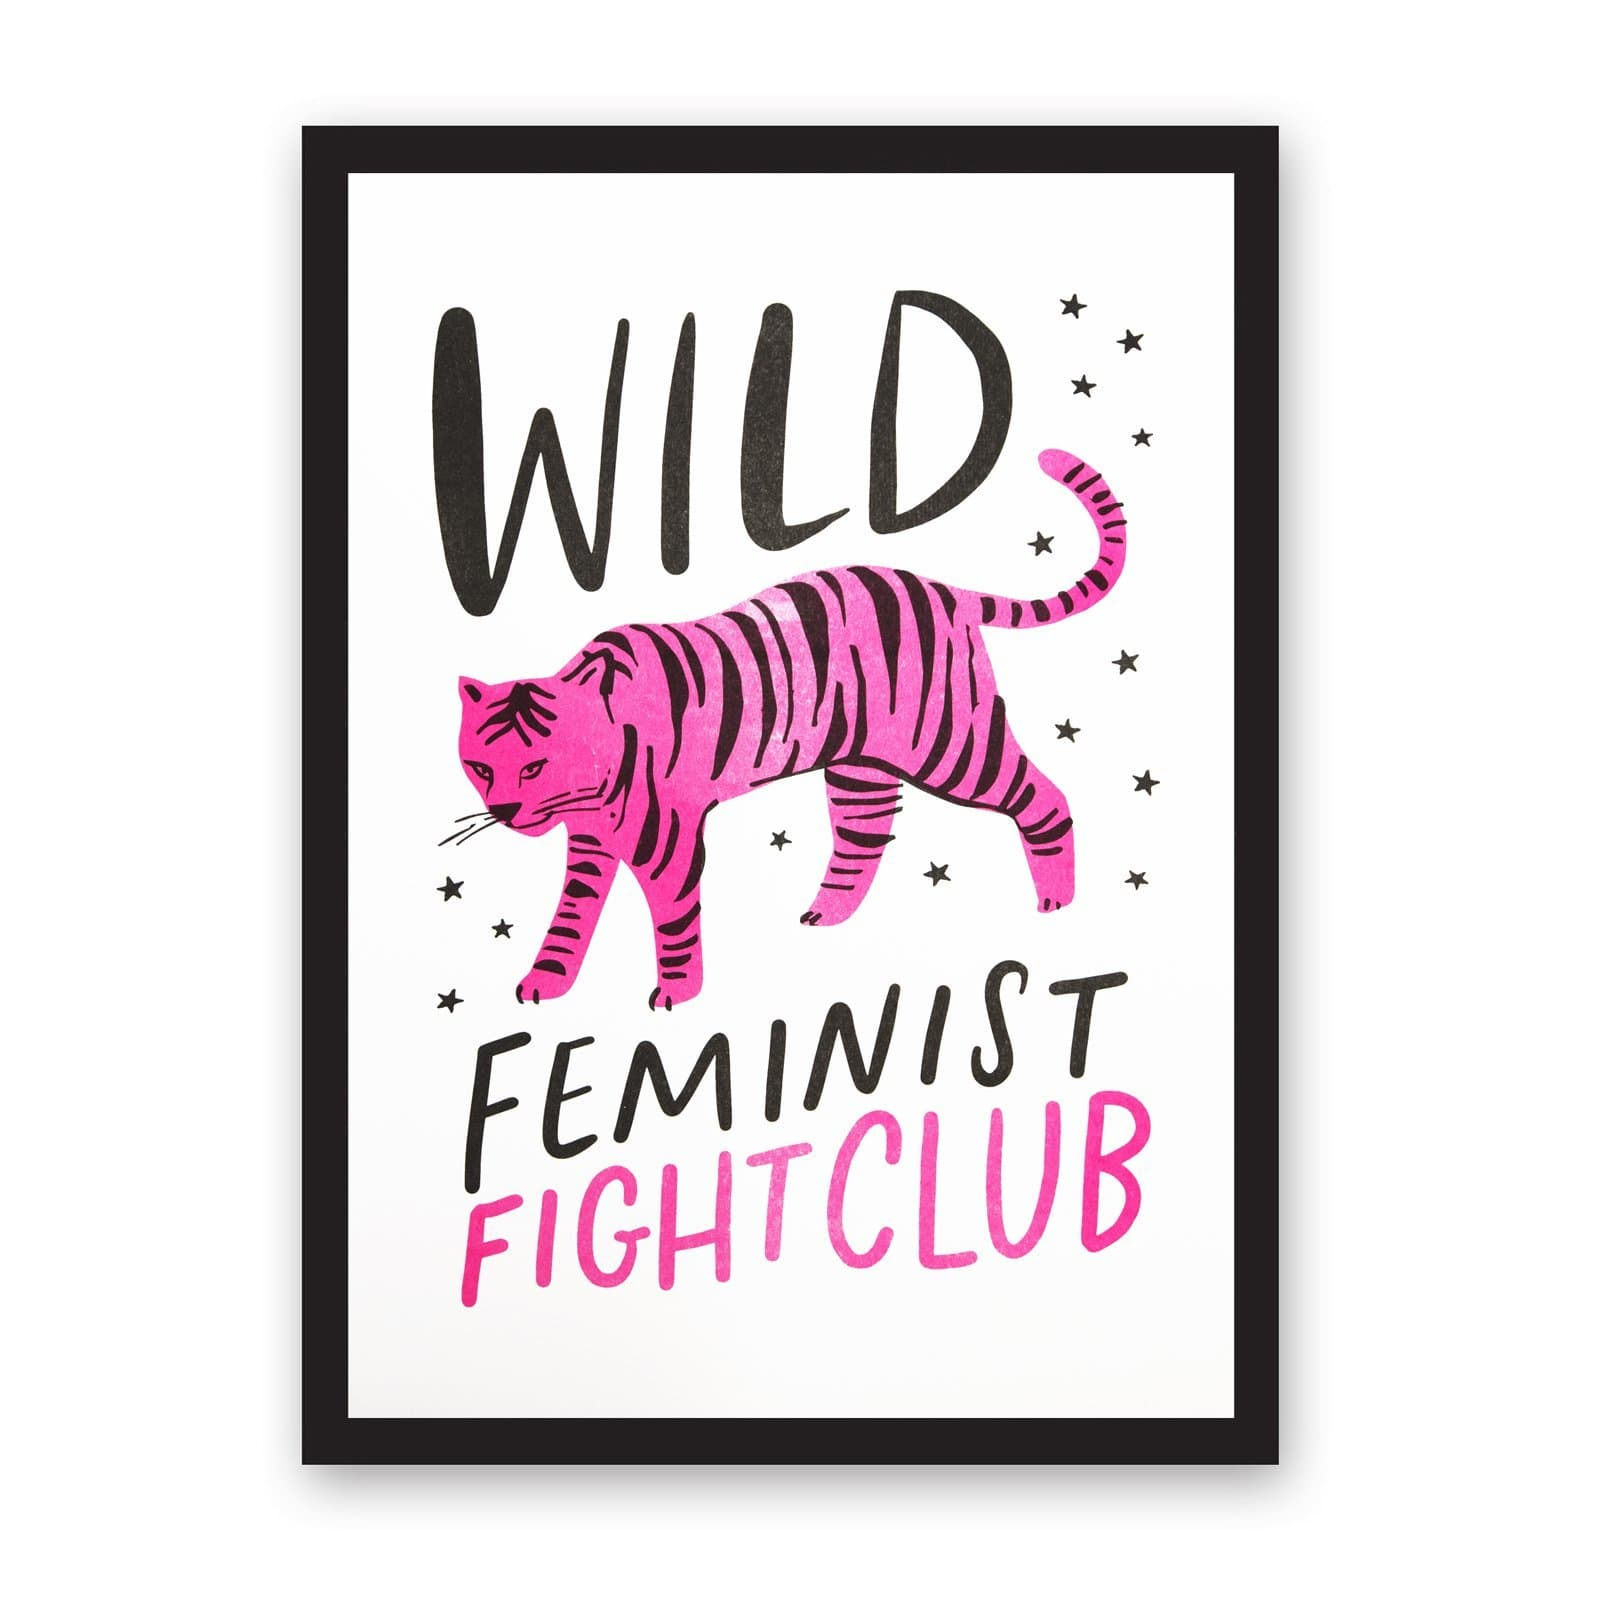 White paper with pink and black illustrated tiger and black stars, with wording Wild, Feminist Fight Club in black and pink